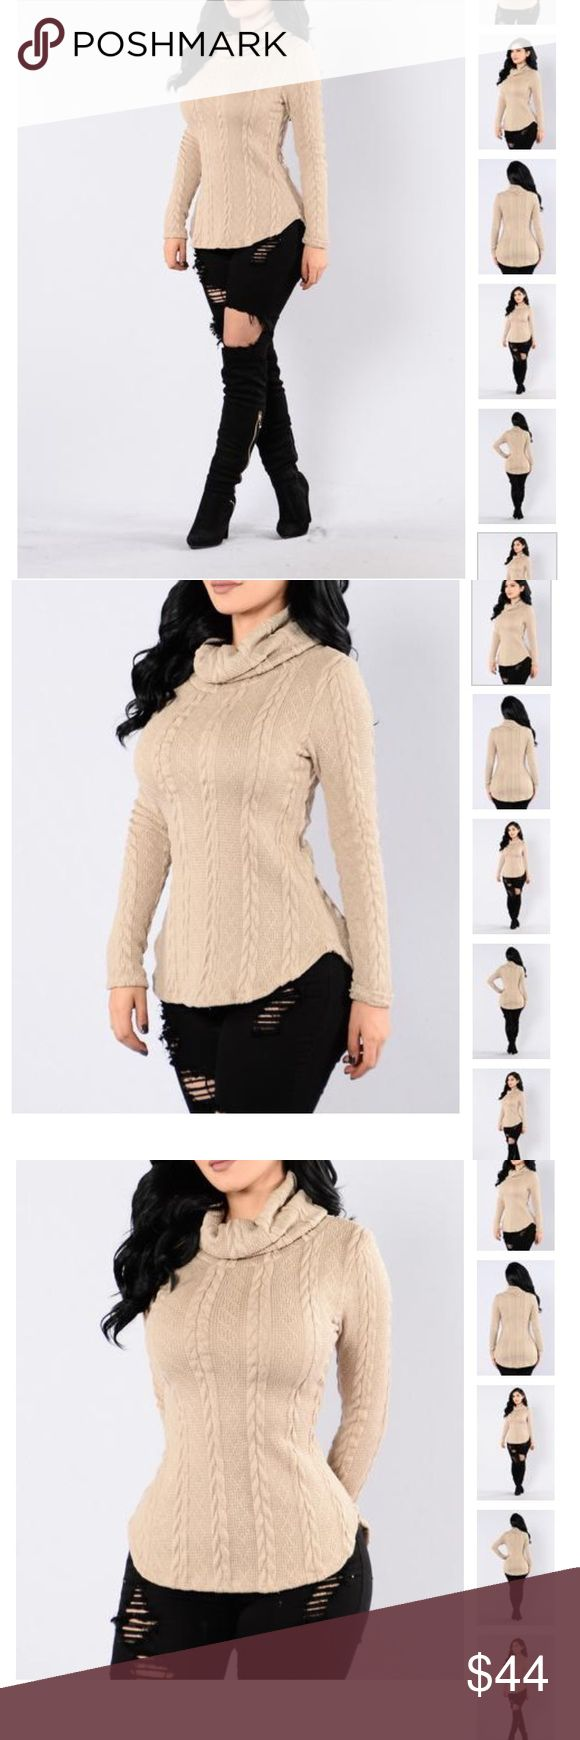 ✨NEW LIST✨ Winter Tan Cowl Neck Sweater Round, high low hem, cowl neck tan sweater. SIZE RUNS BIG!! Best for a curvy small or a medium if you're less curvy but want an extra snug fit. 100% polyester, comfy and beautiful!! New in bag. Sweaters Cowl & Turtlenecks